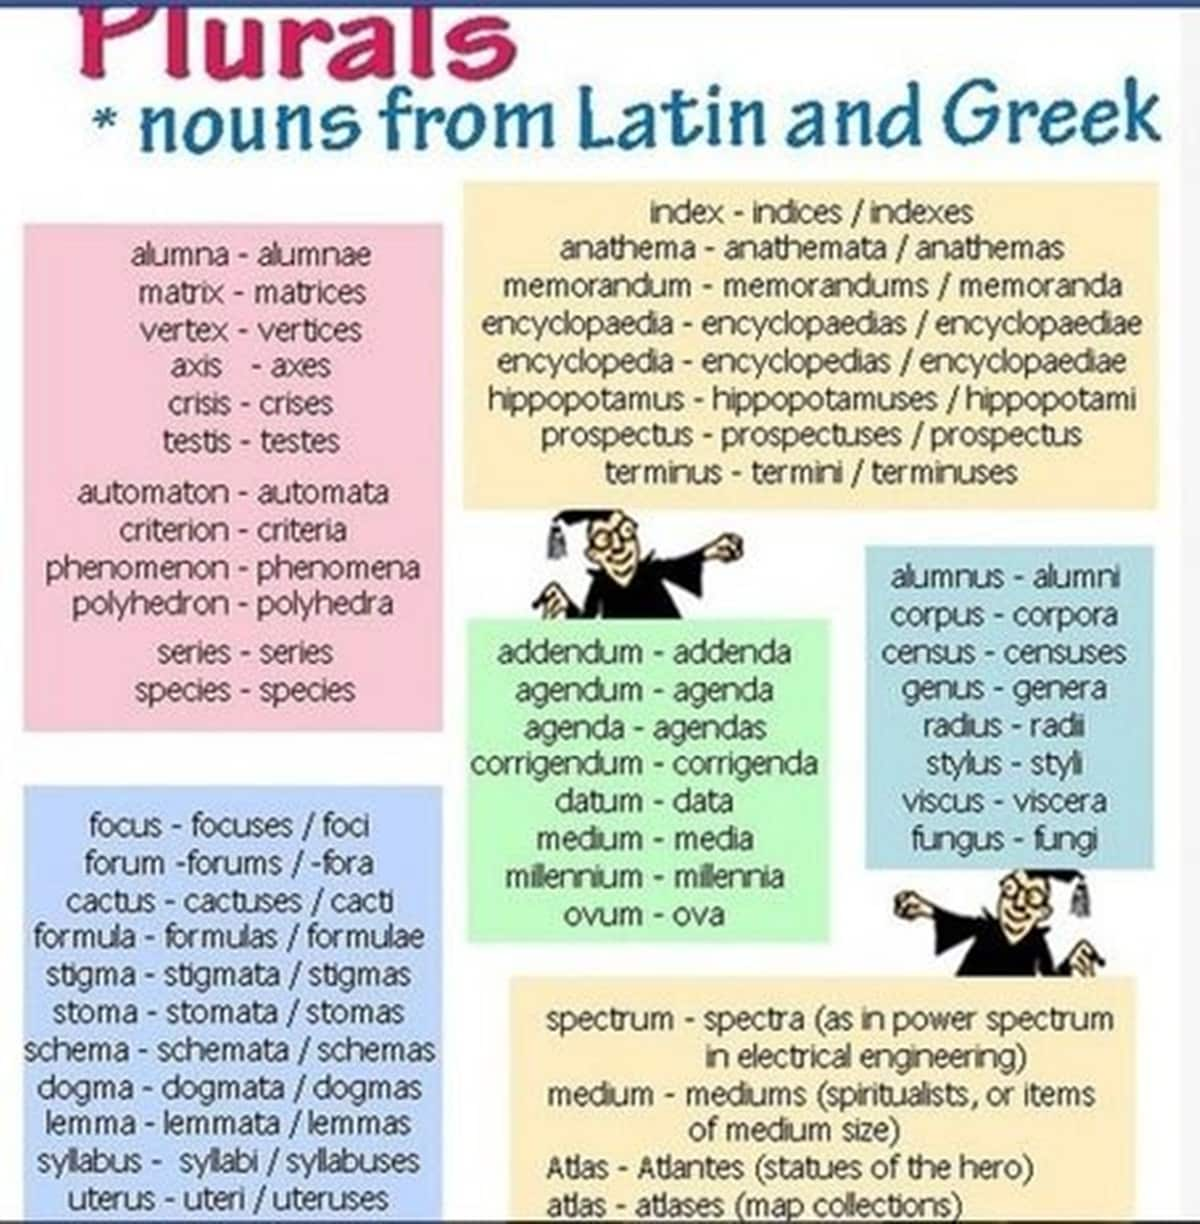 plurals - nouns from Latin and Greek